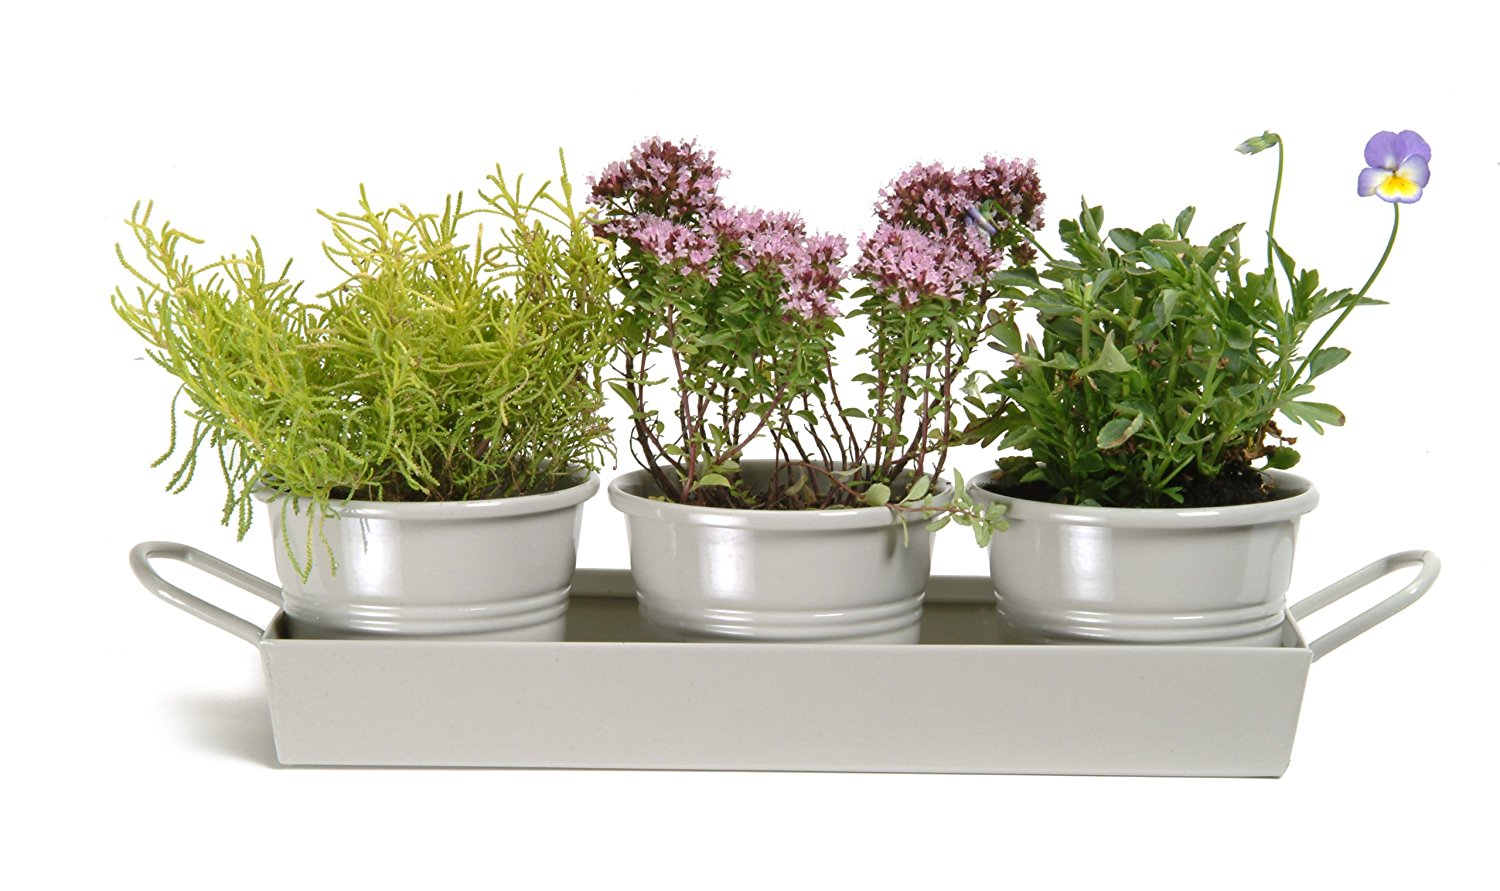 set of 3 trays perfect for the garden